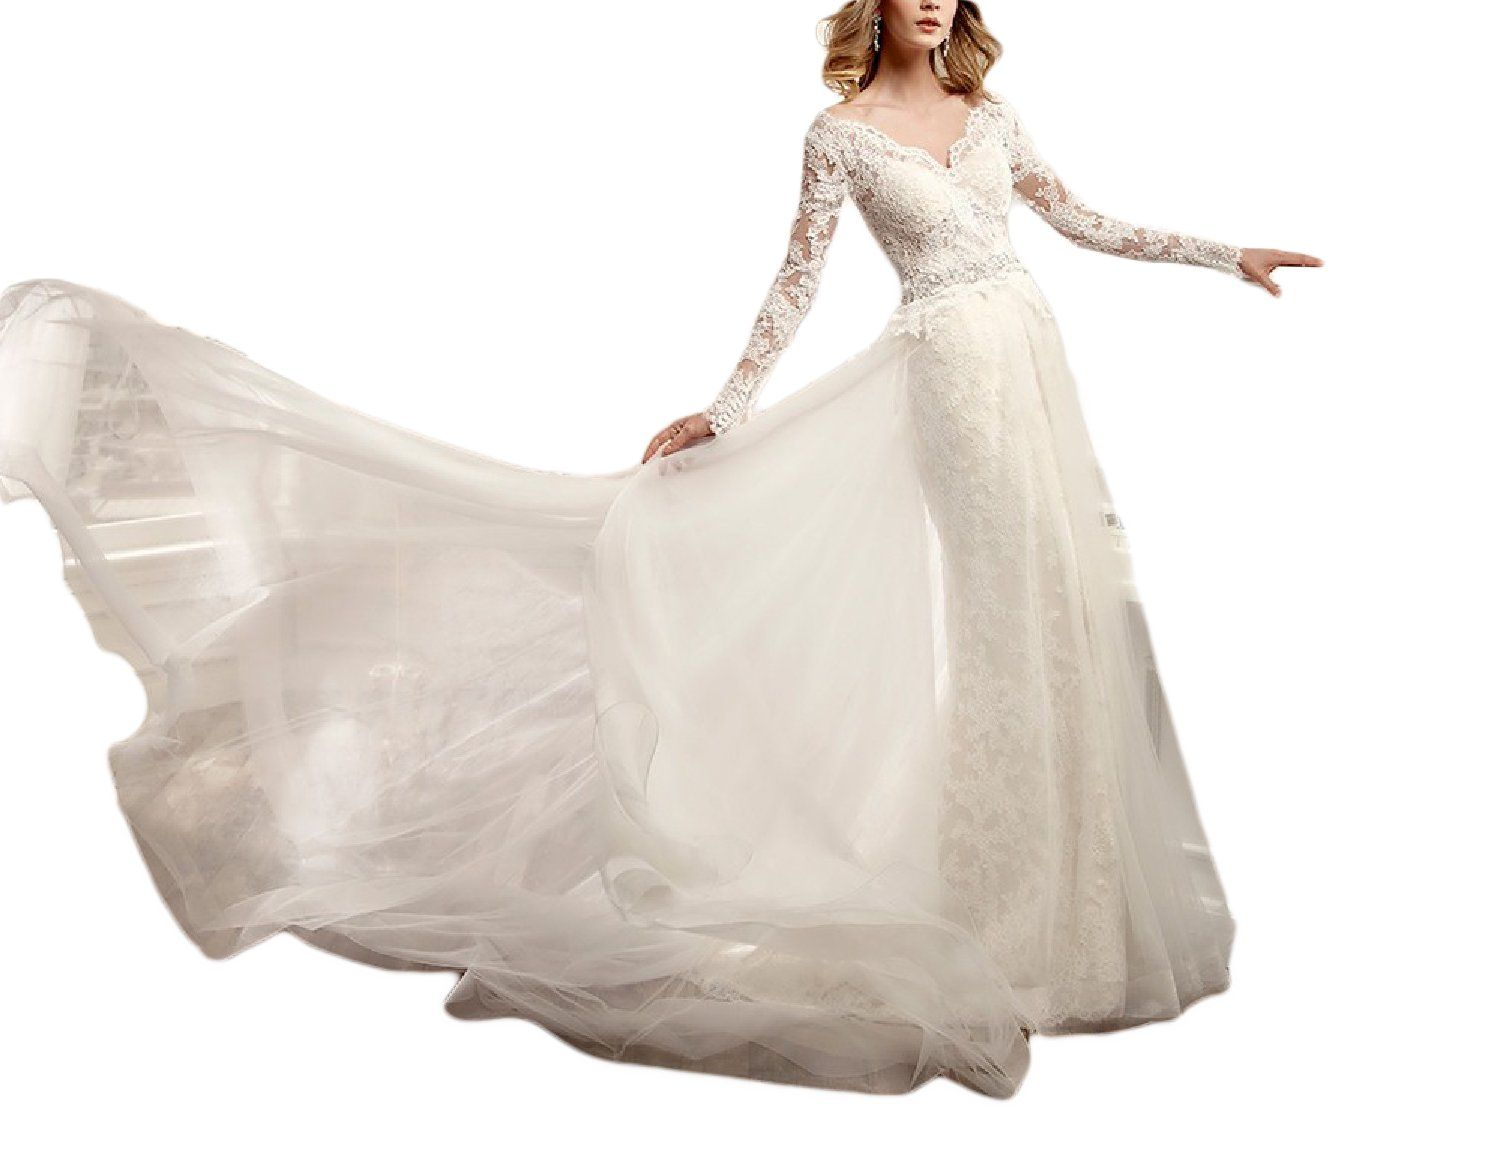 Ysmei womenus long v neck bridal gowns tulle wedding dress with